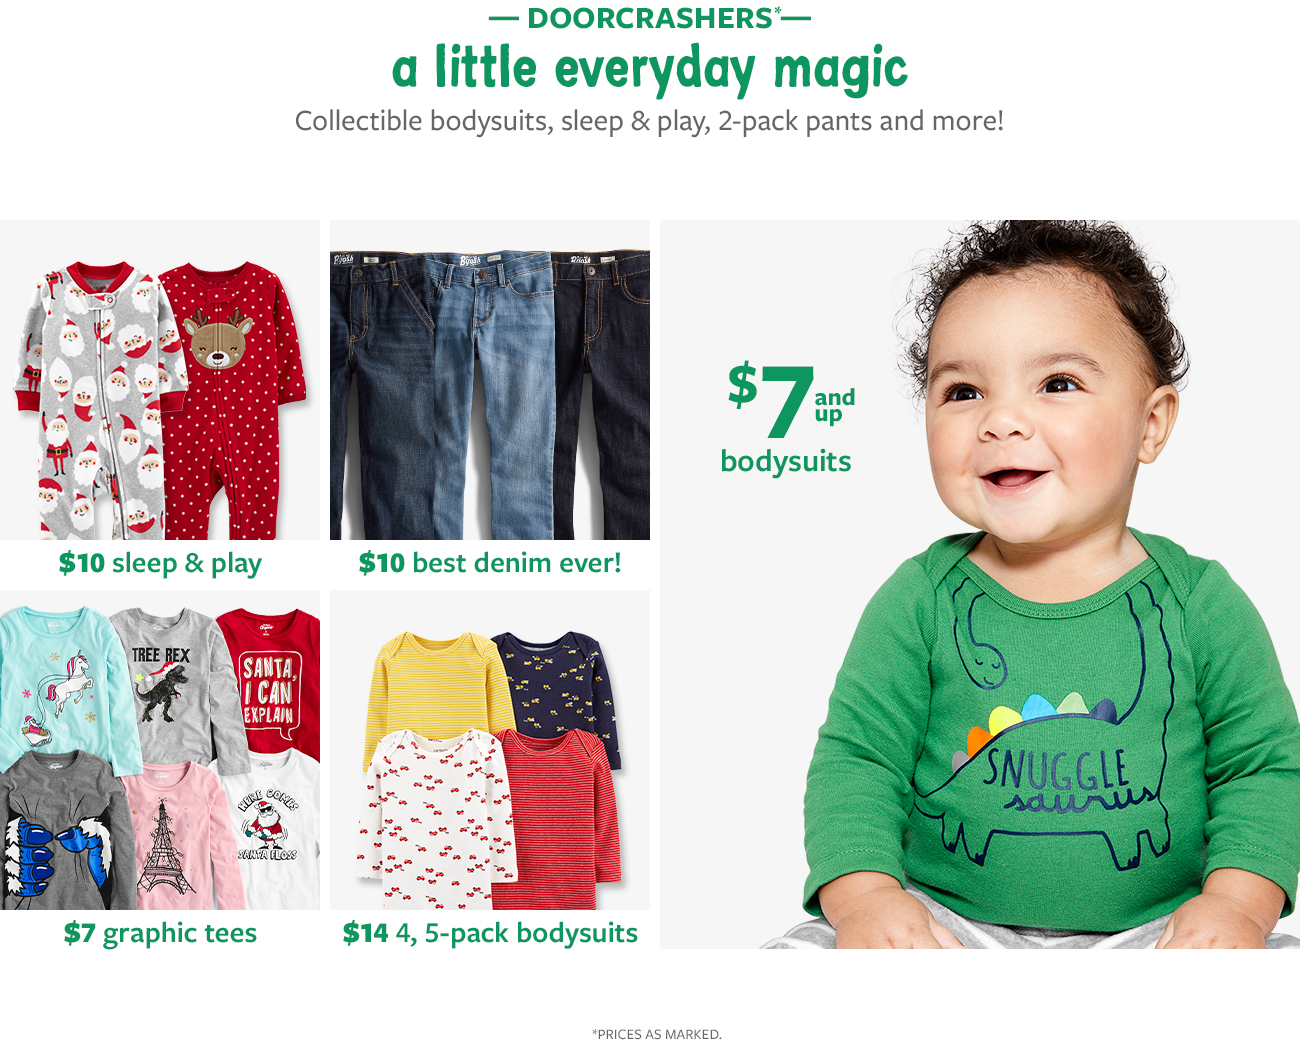 doorcrashers a little everyday magic   collectible bodysuits, sleep & play, 2-pack pants and more!   $10 sleep & play   $10 best denim ever!   $ 7 and up bodysuits   $ graphic tees   14$ 4,5-pack bodysuits